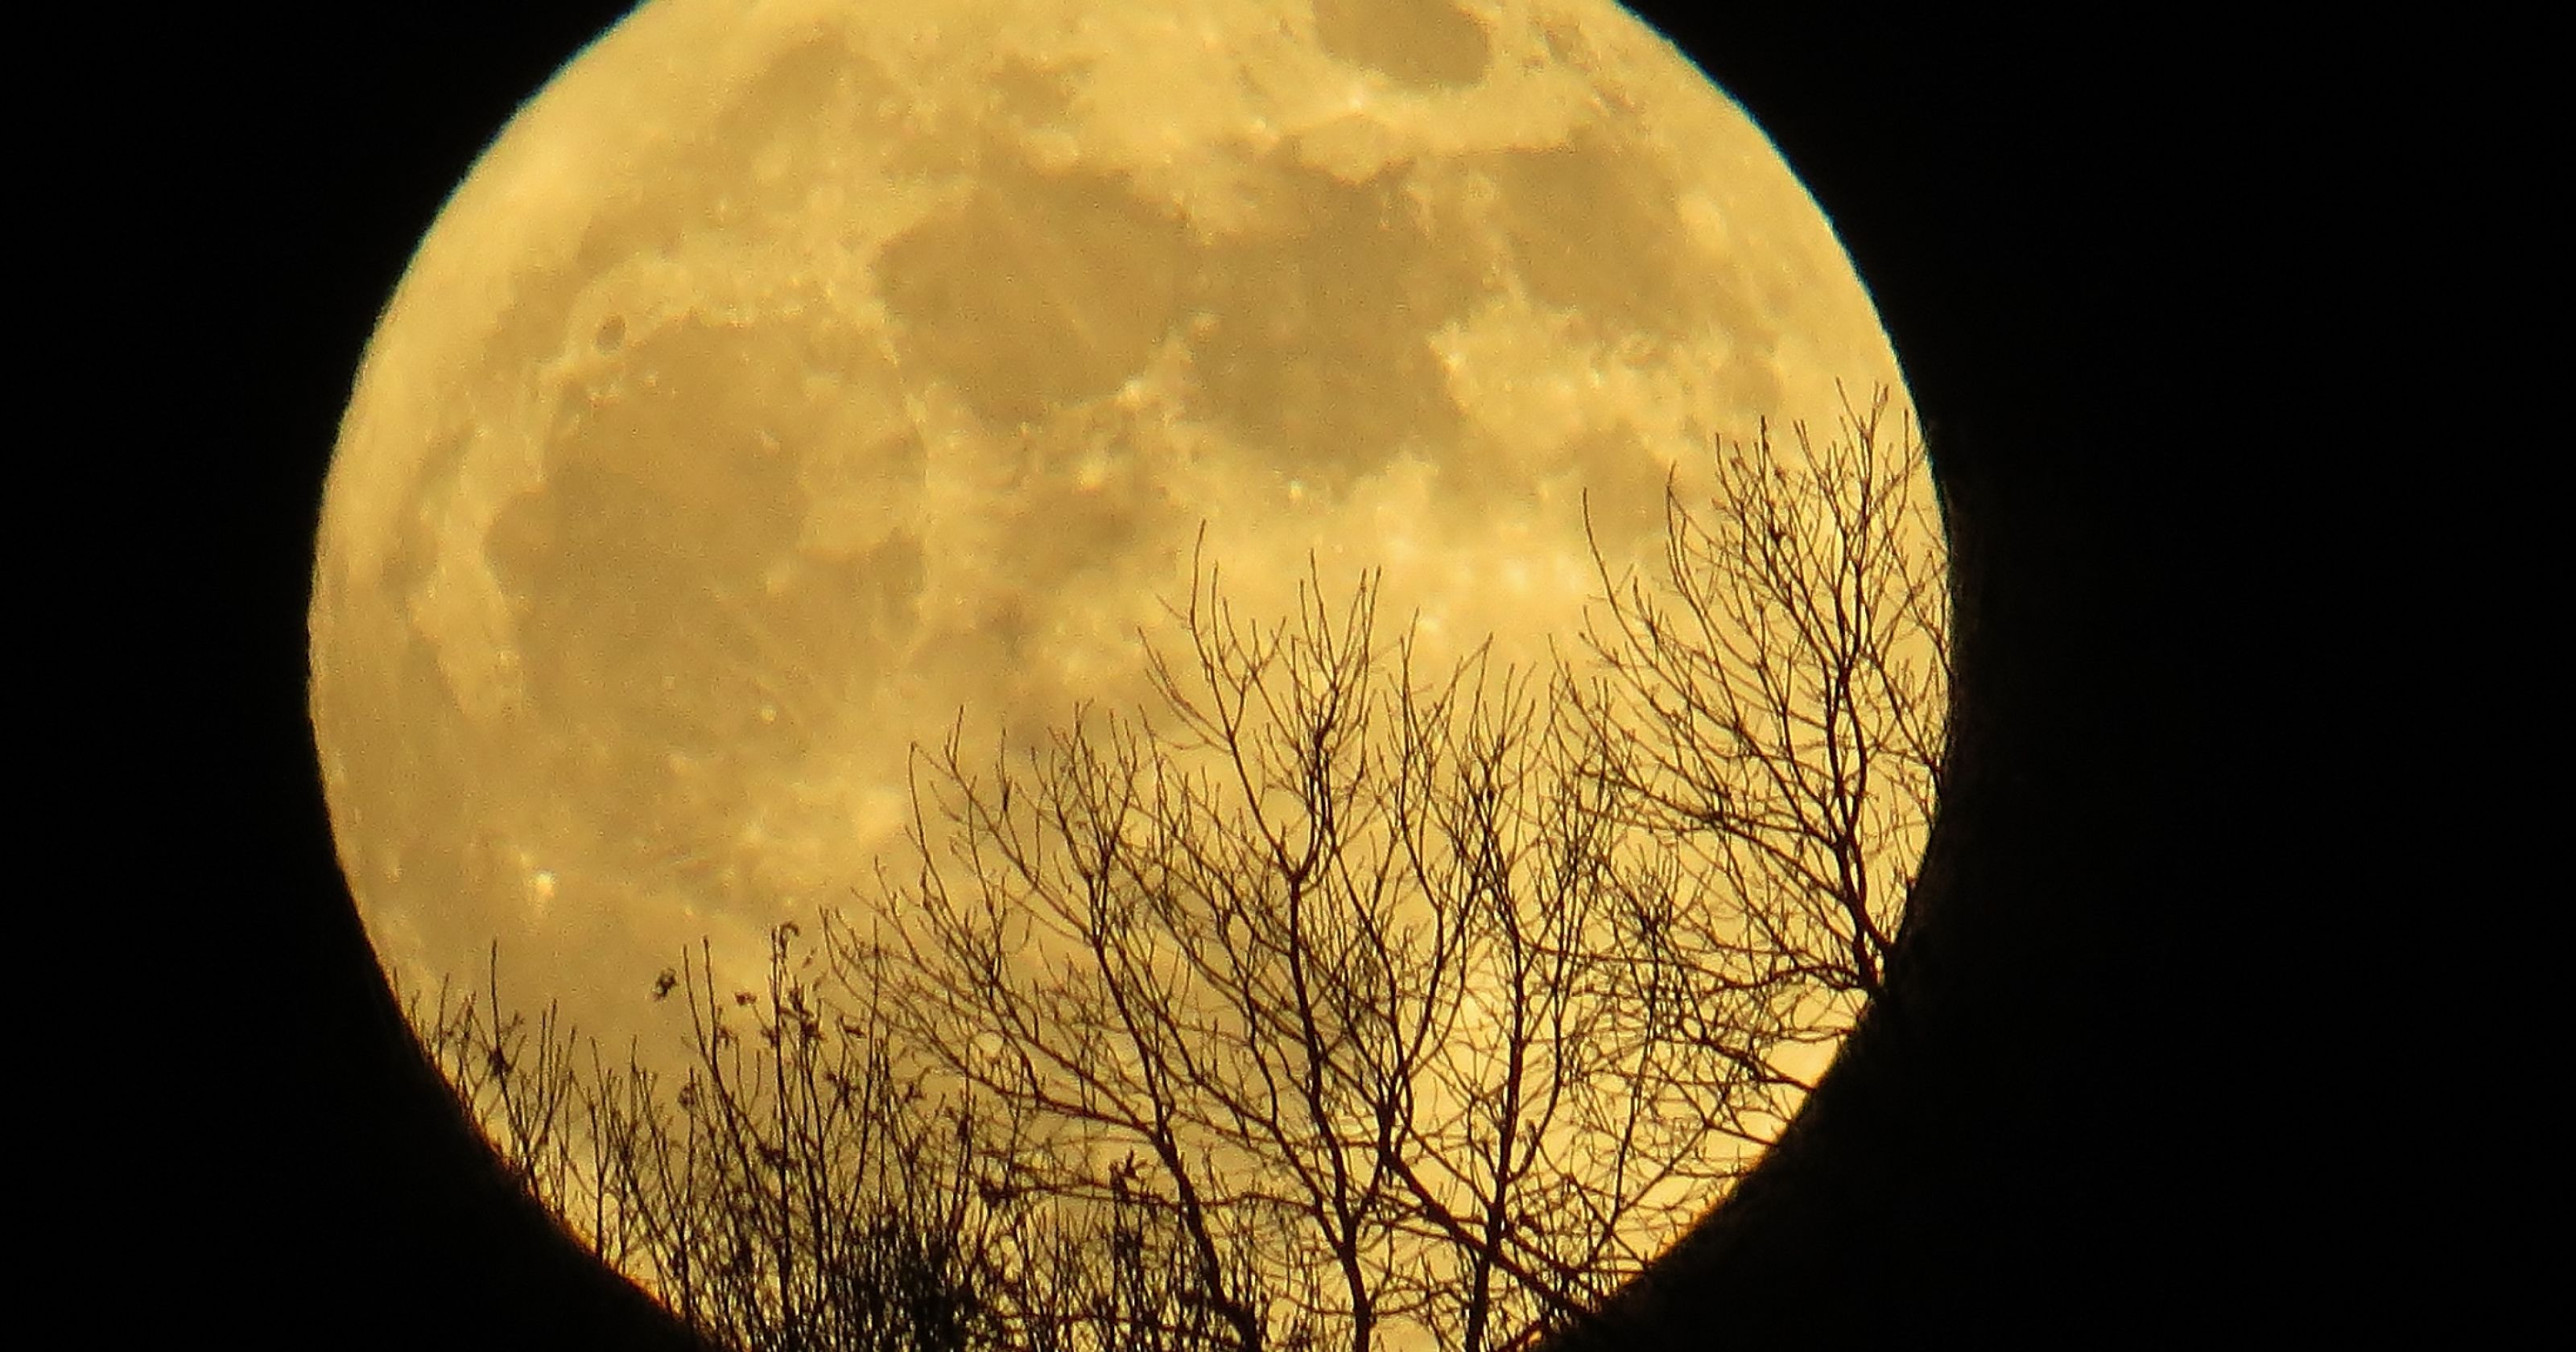 Once in a blue moon happening twice in 2018